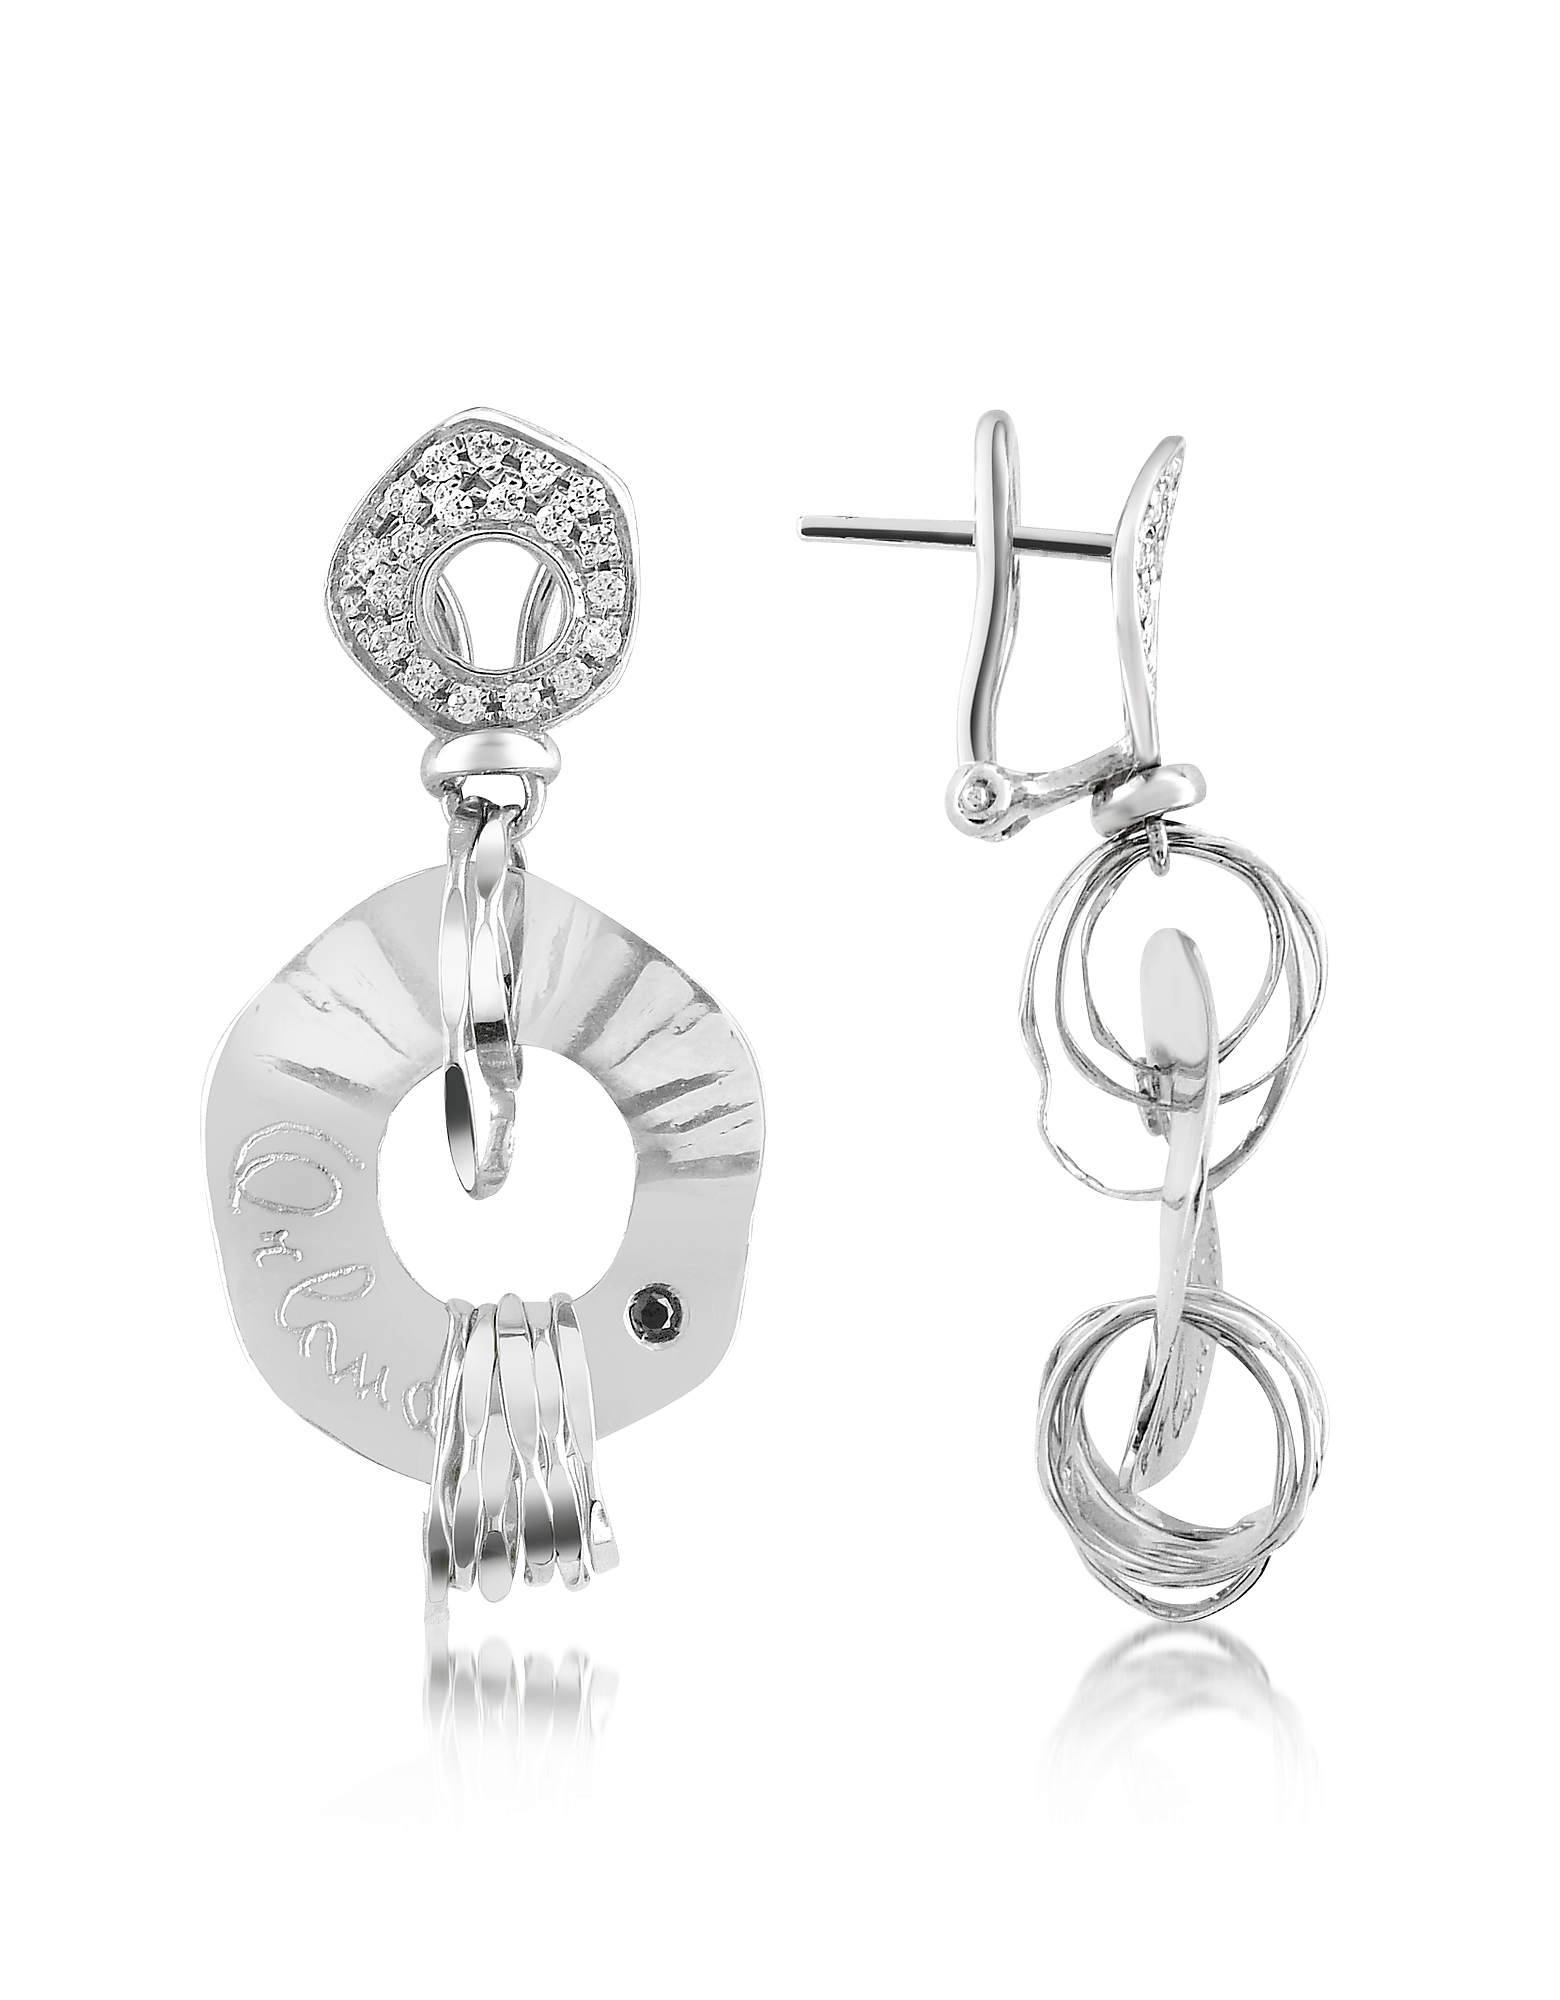 Orlando Orlandini Designer Earrings, Fashion - Diamond 18K White Gold Drop Earrings